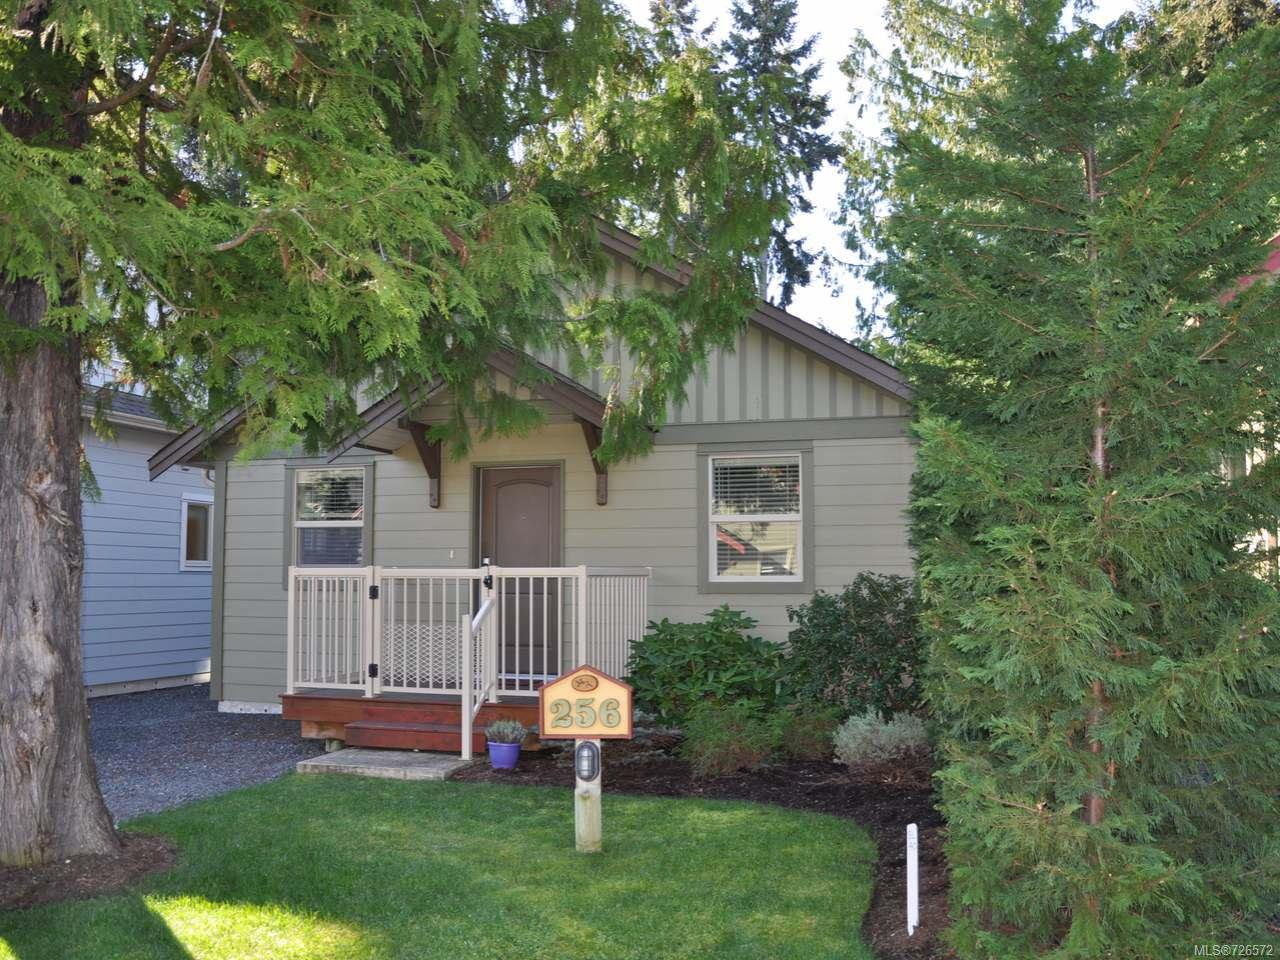 Main Photo: 256 1130 RESORT DRIVE in PARKSVILLE: PQ Parksville Row/Townhouse for sale (Parksville/Qualicum)  : MLS®# 726572